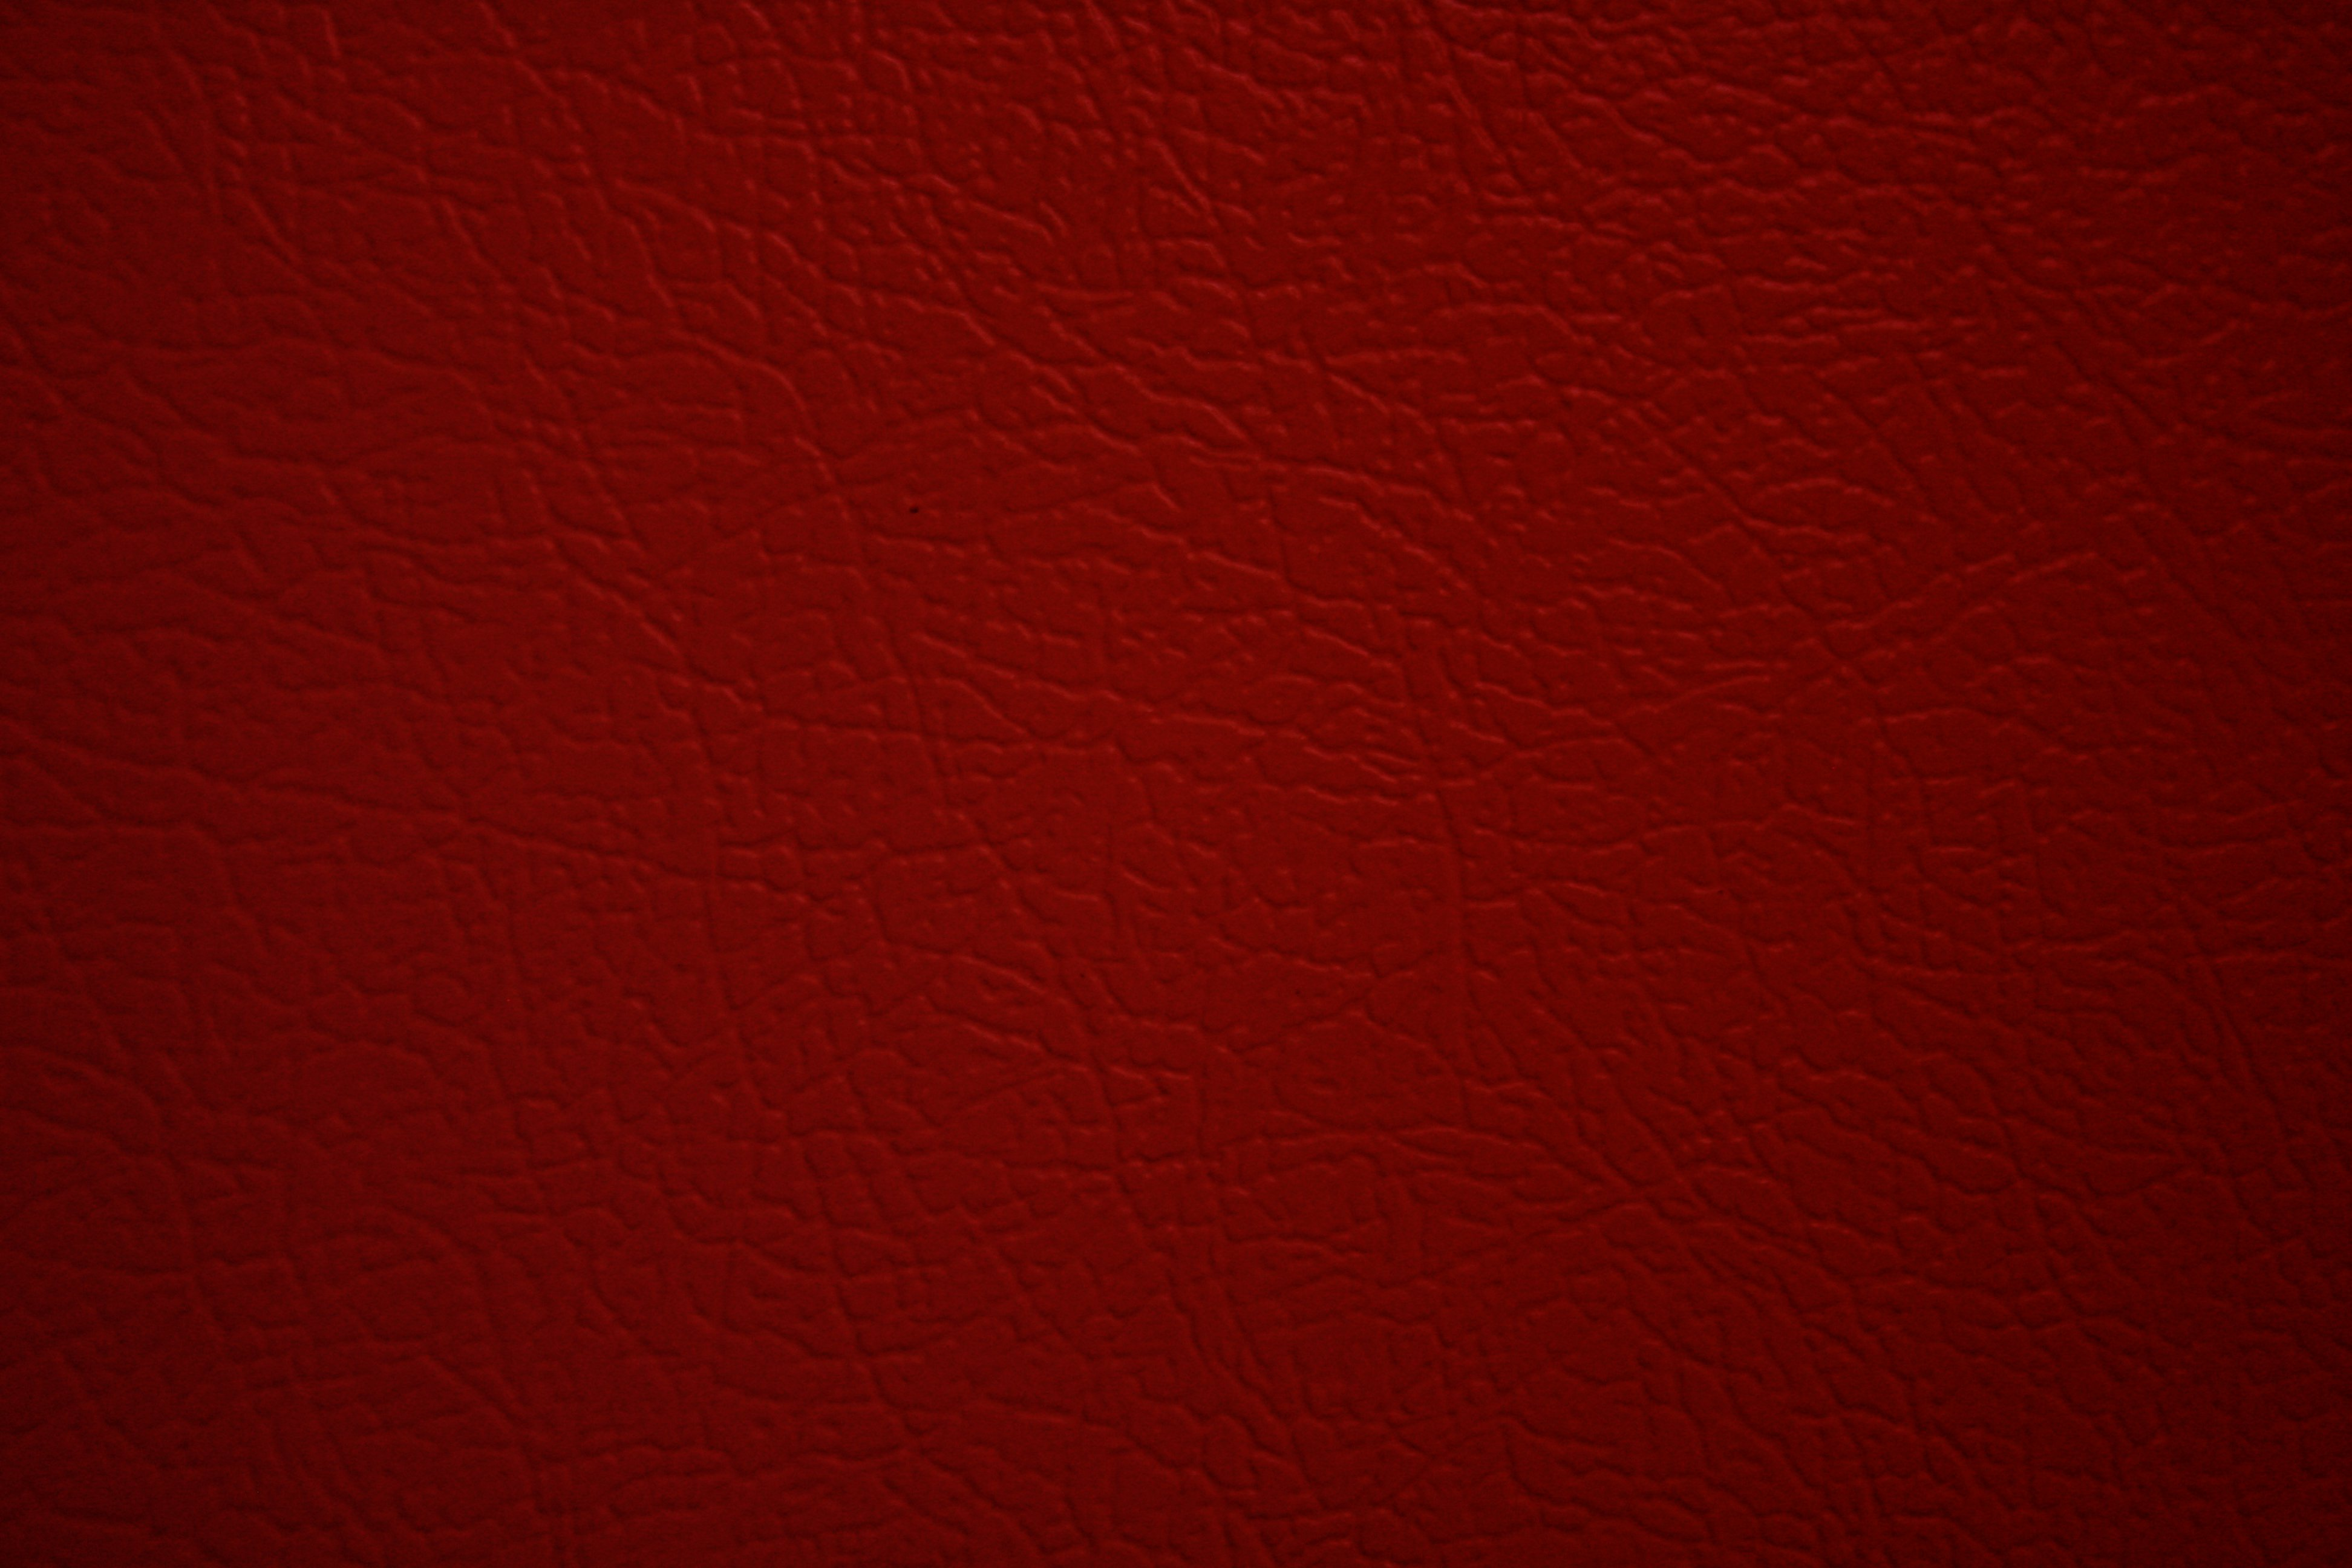 Black Brick Wallpaper Red Faux Leather Texture Picture Free Photograph